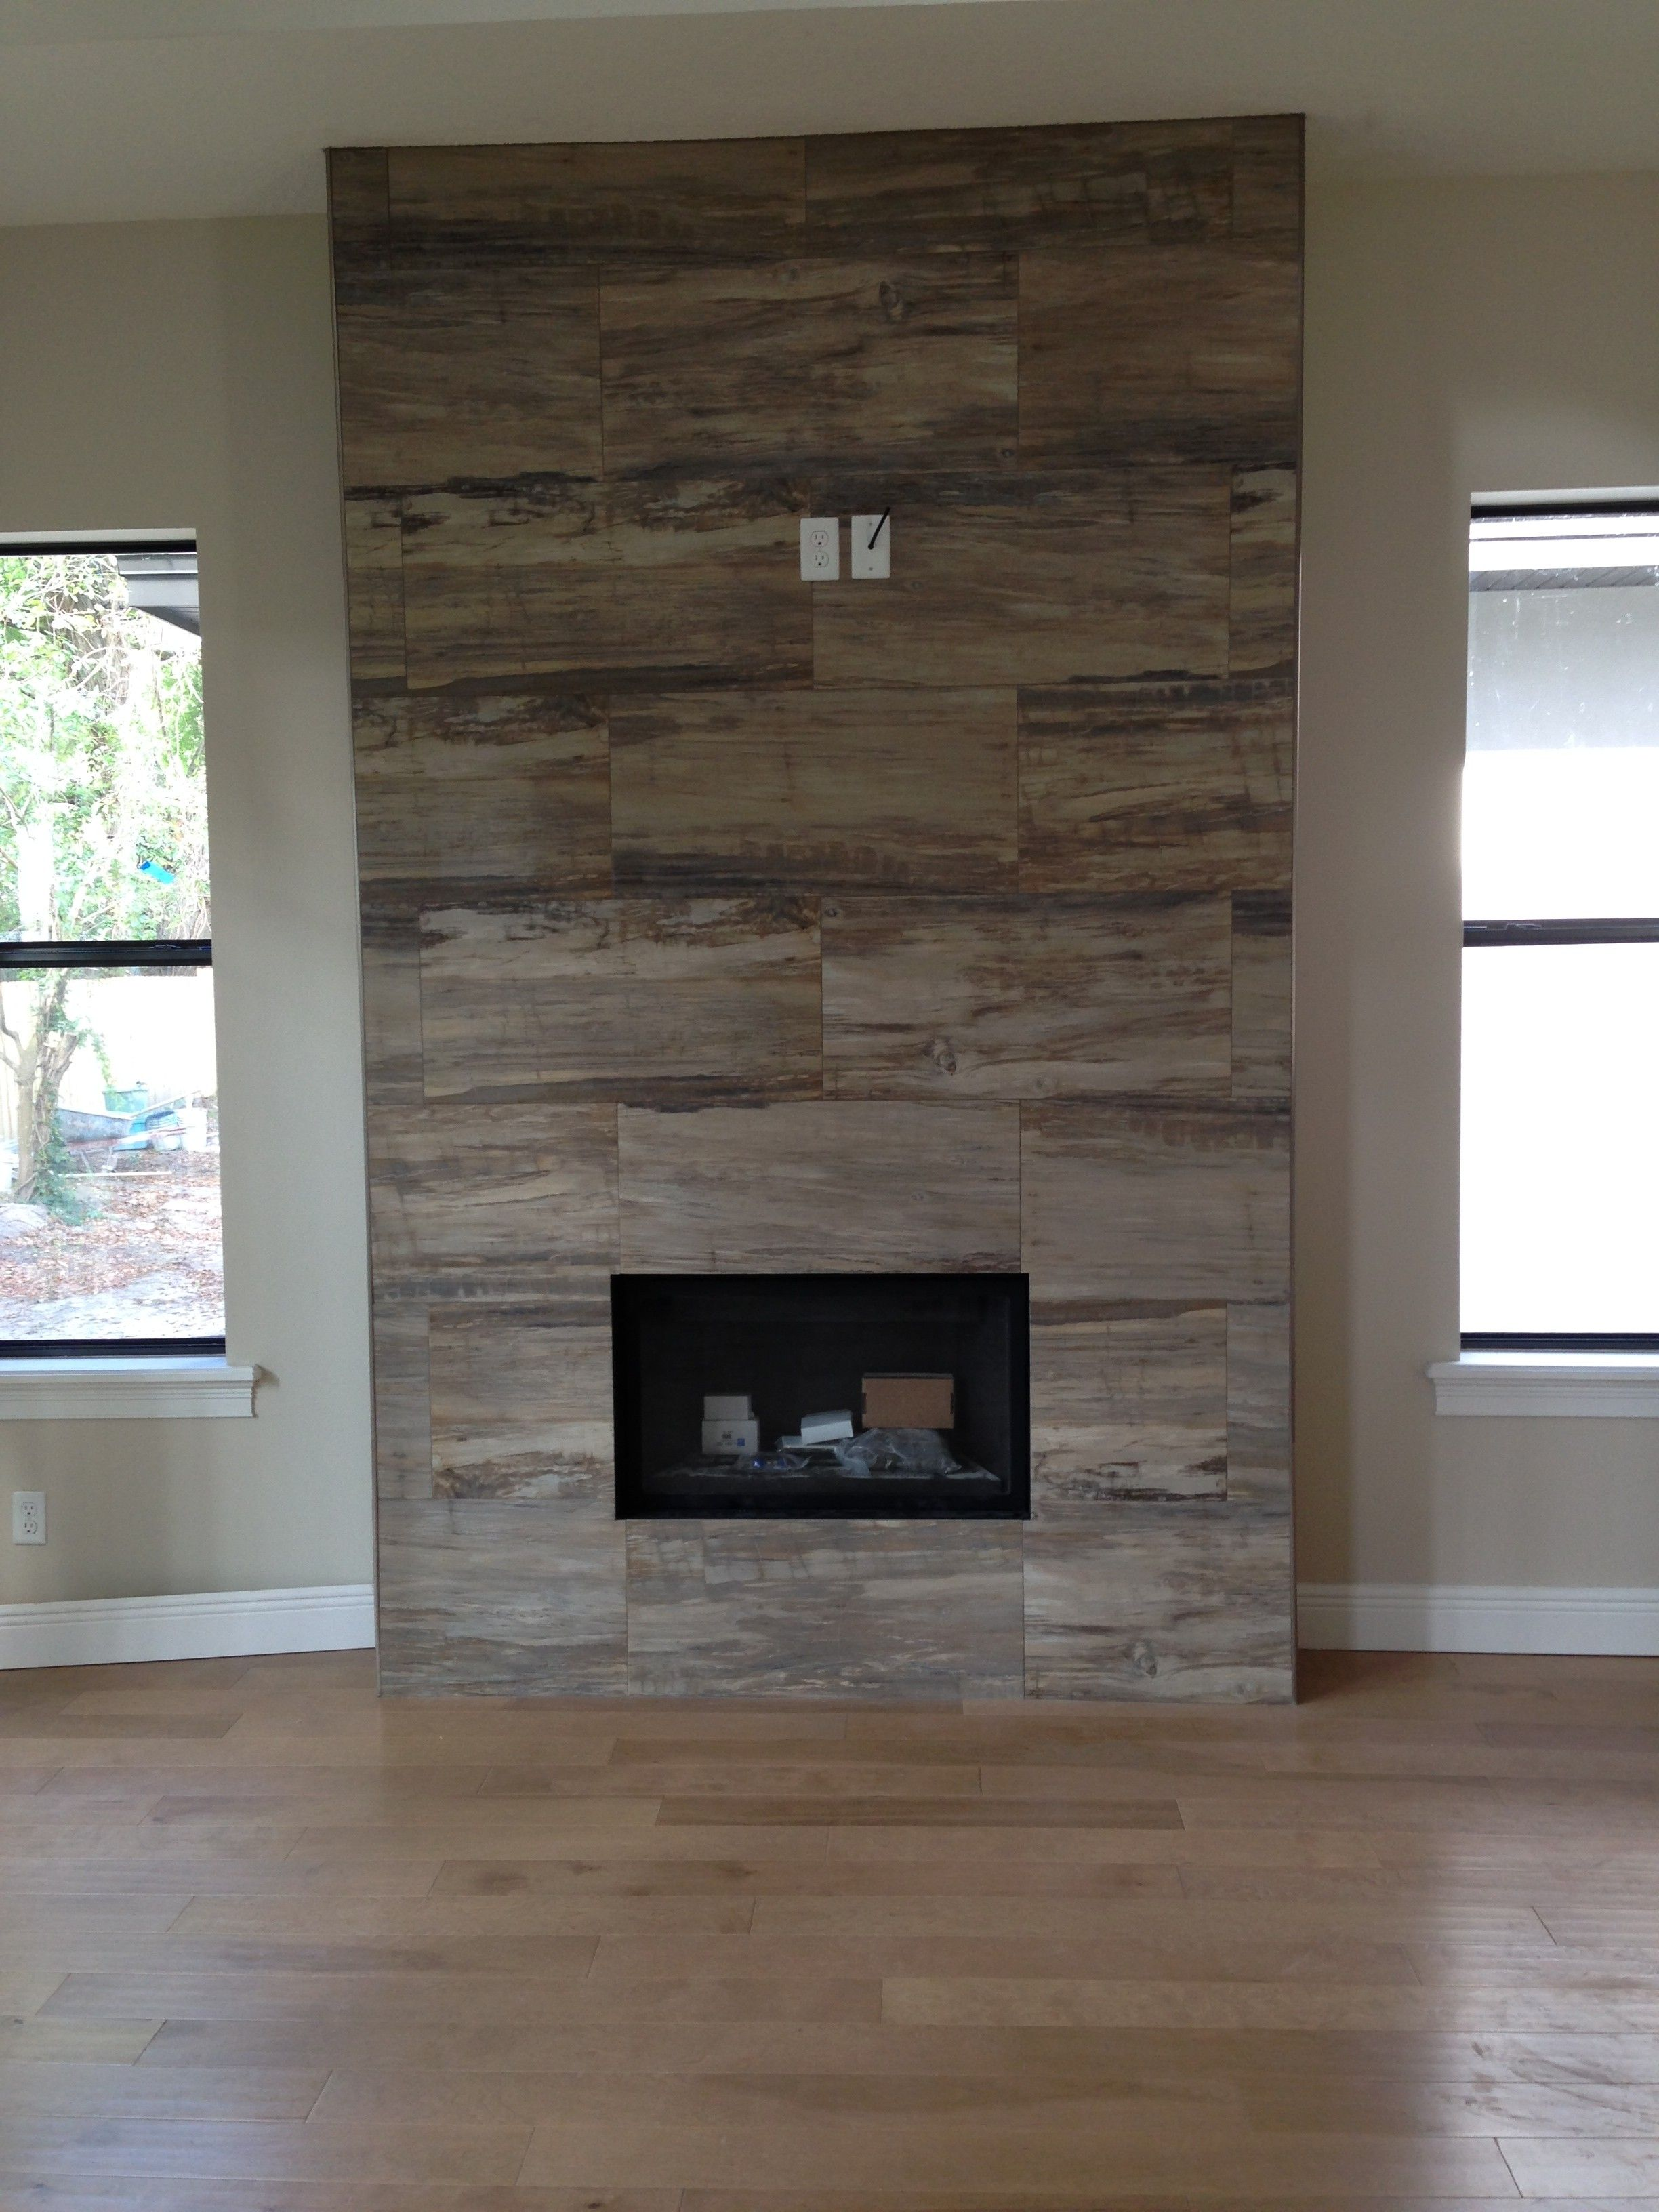 J Wood Tile makes an absolutely stunning fireplace